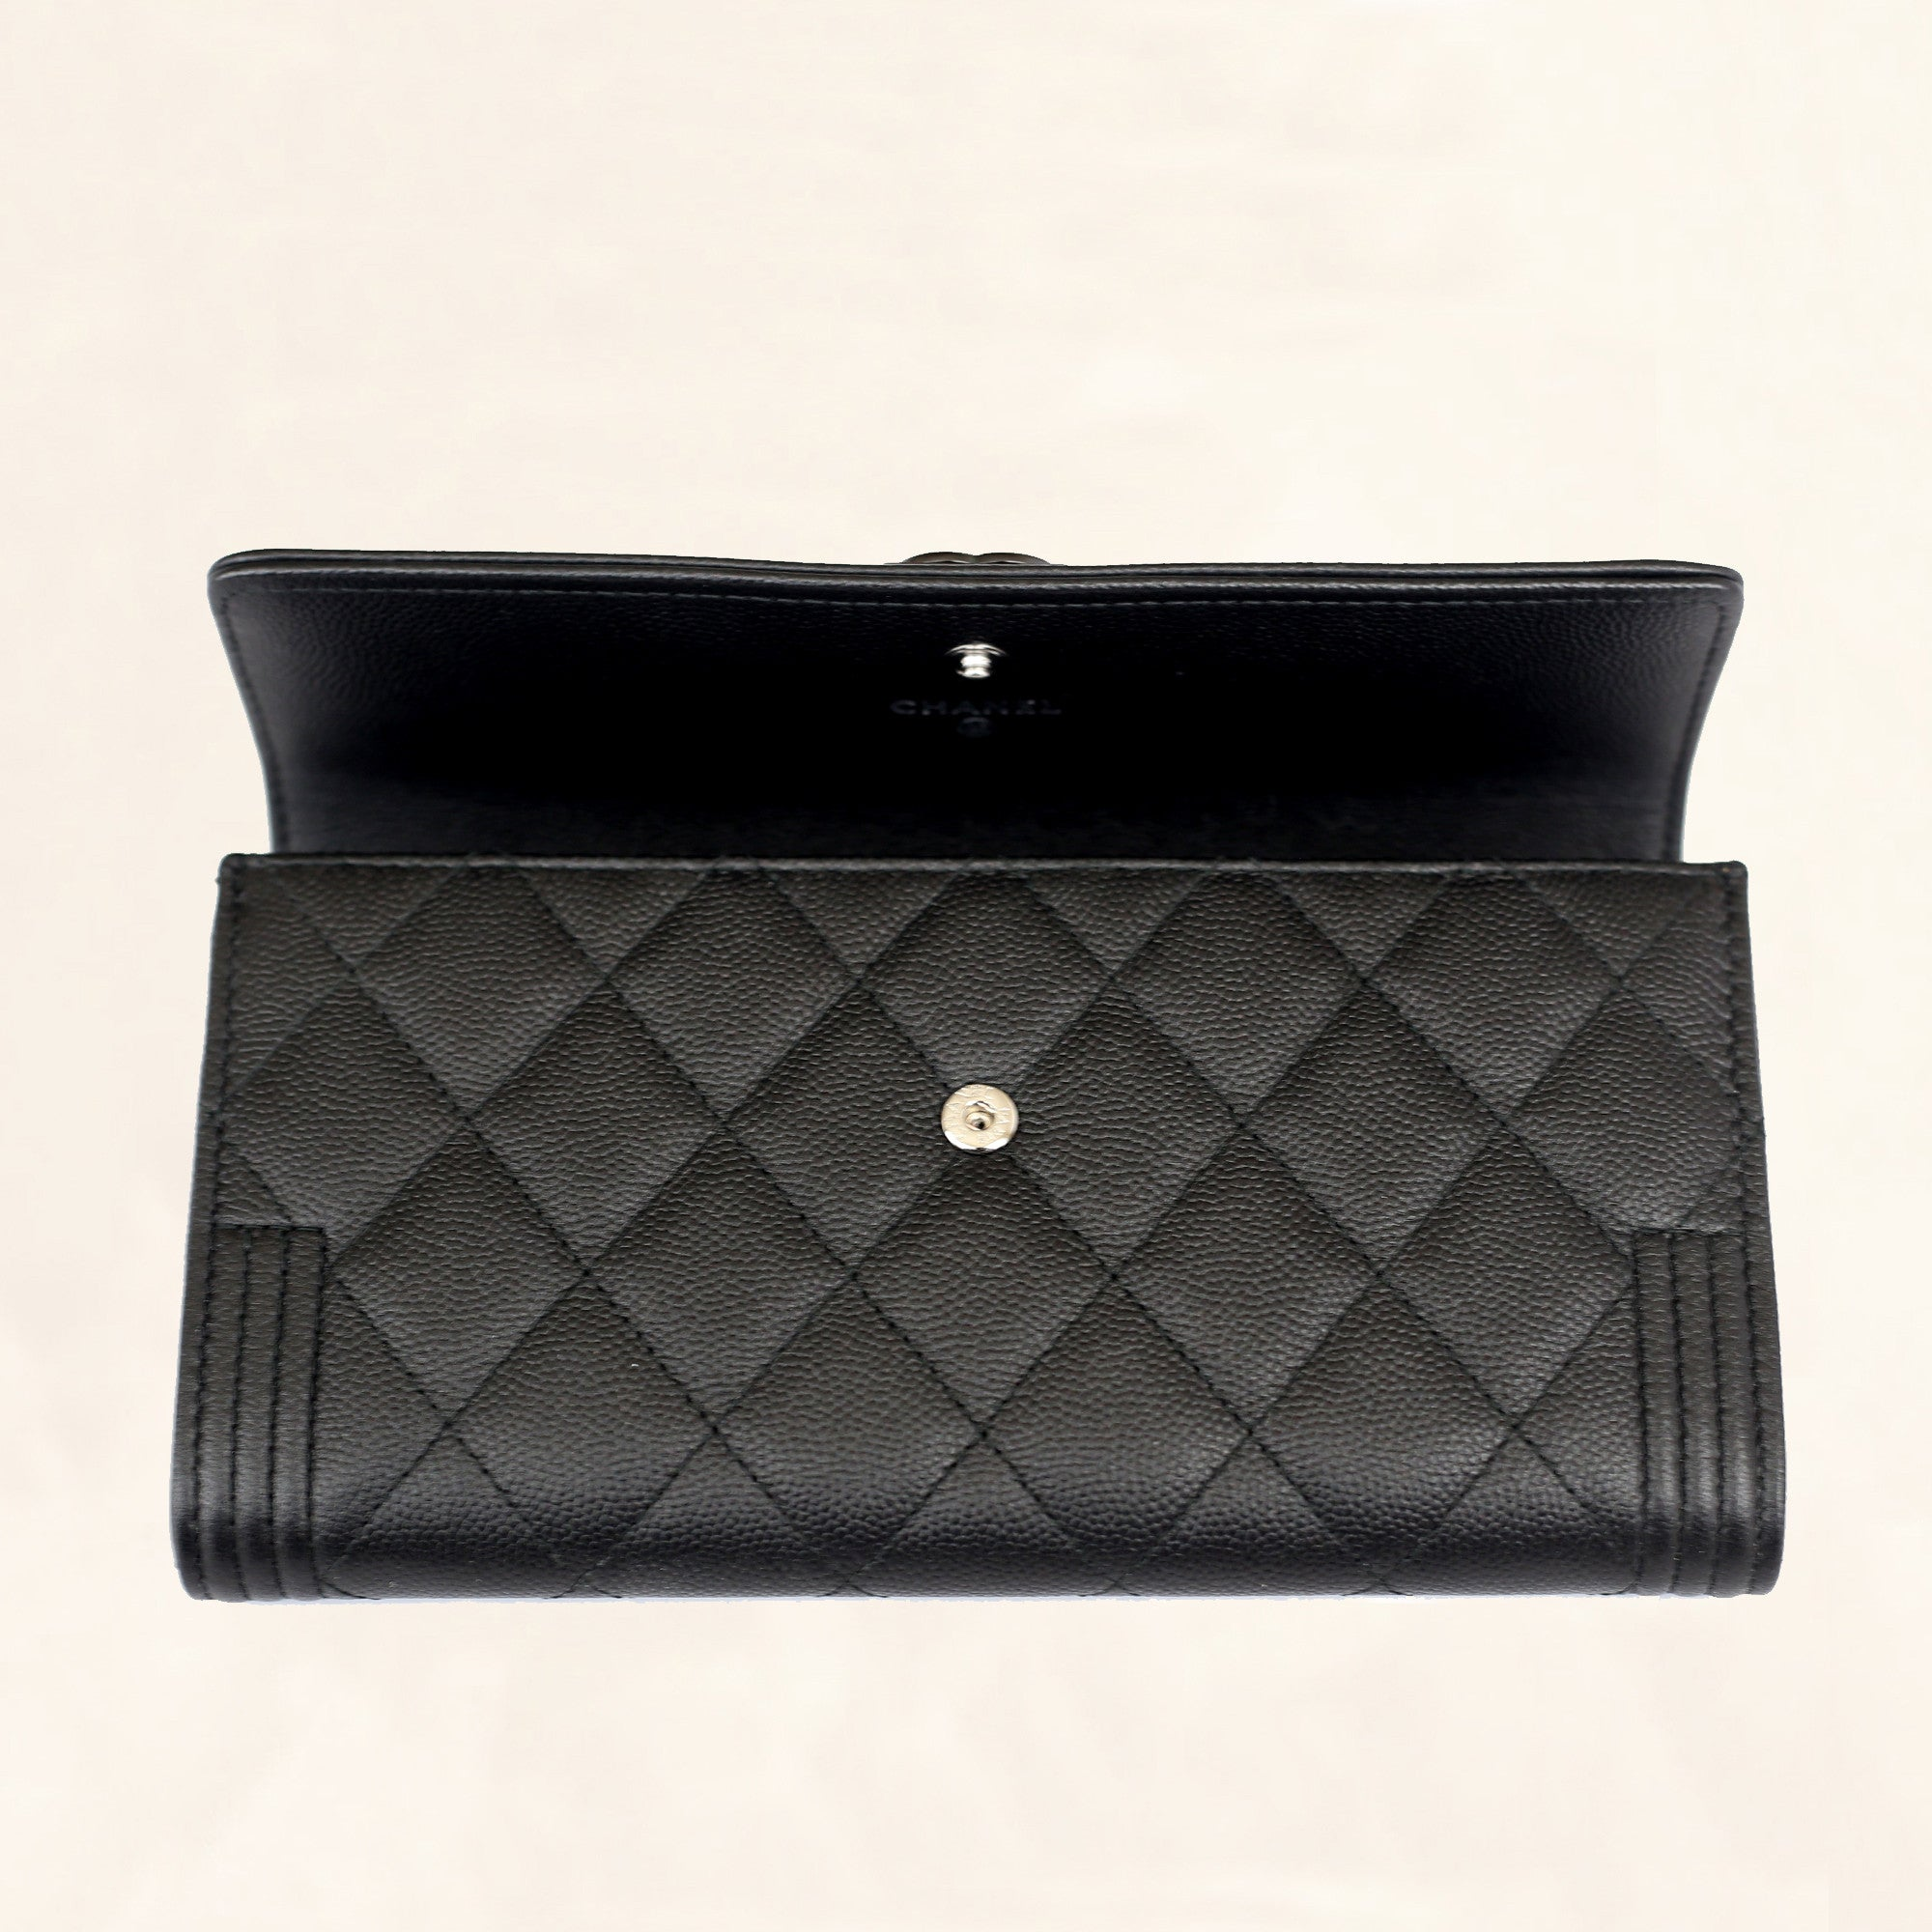 c858b0924742fb Chanel Boy Long Wallet Caviar | Stanford Center for Opportunity ...